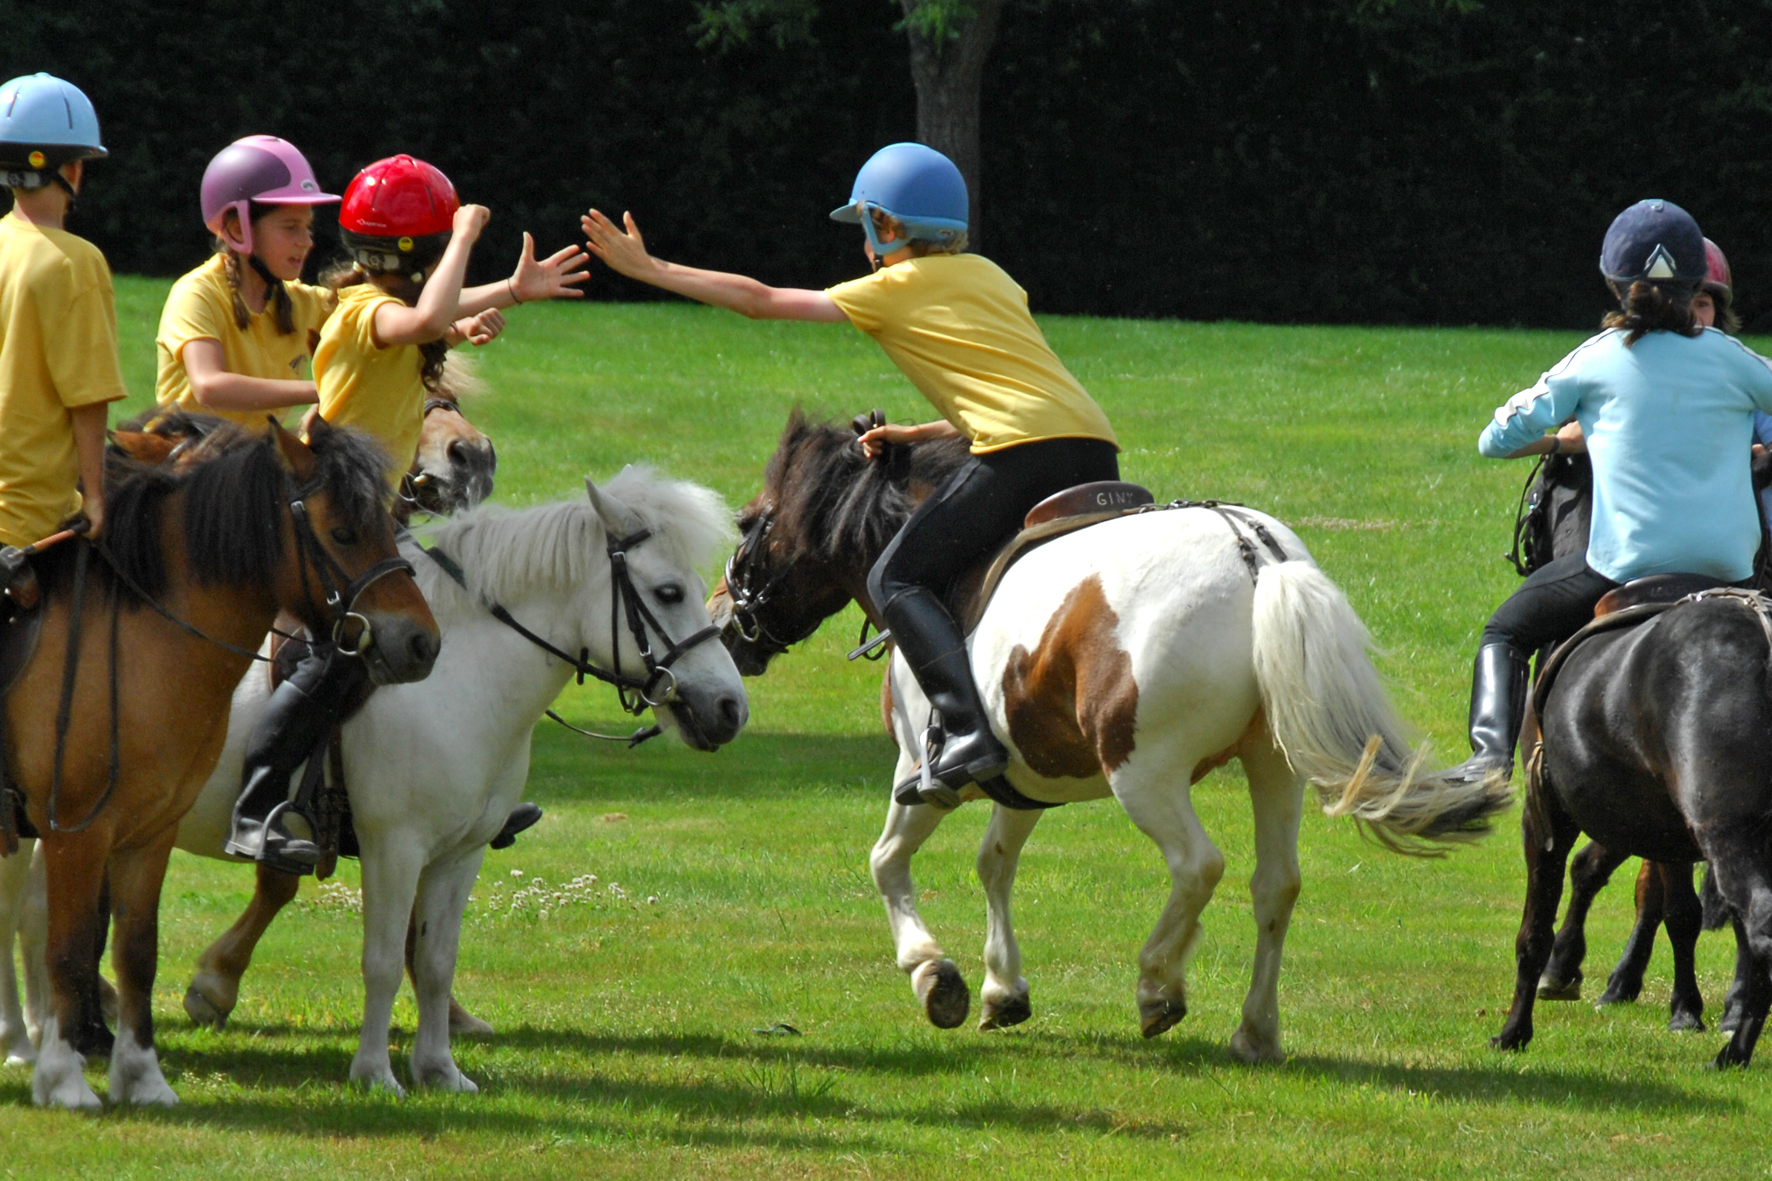 Cheval-Genial Enfants8 Photo-FFE-Maindru-J-Rocher